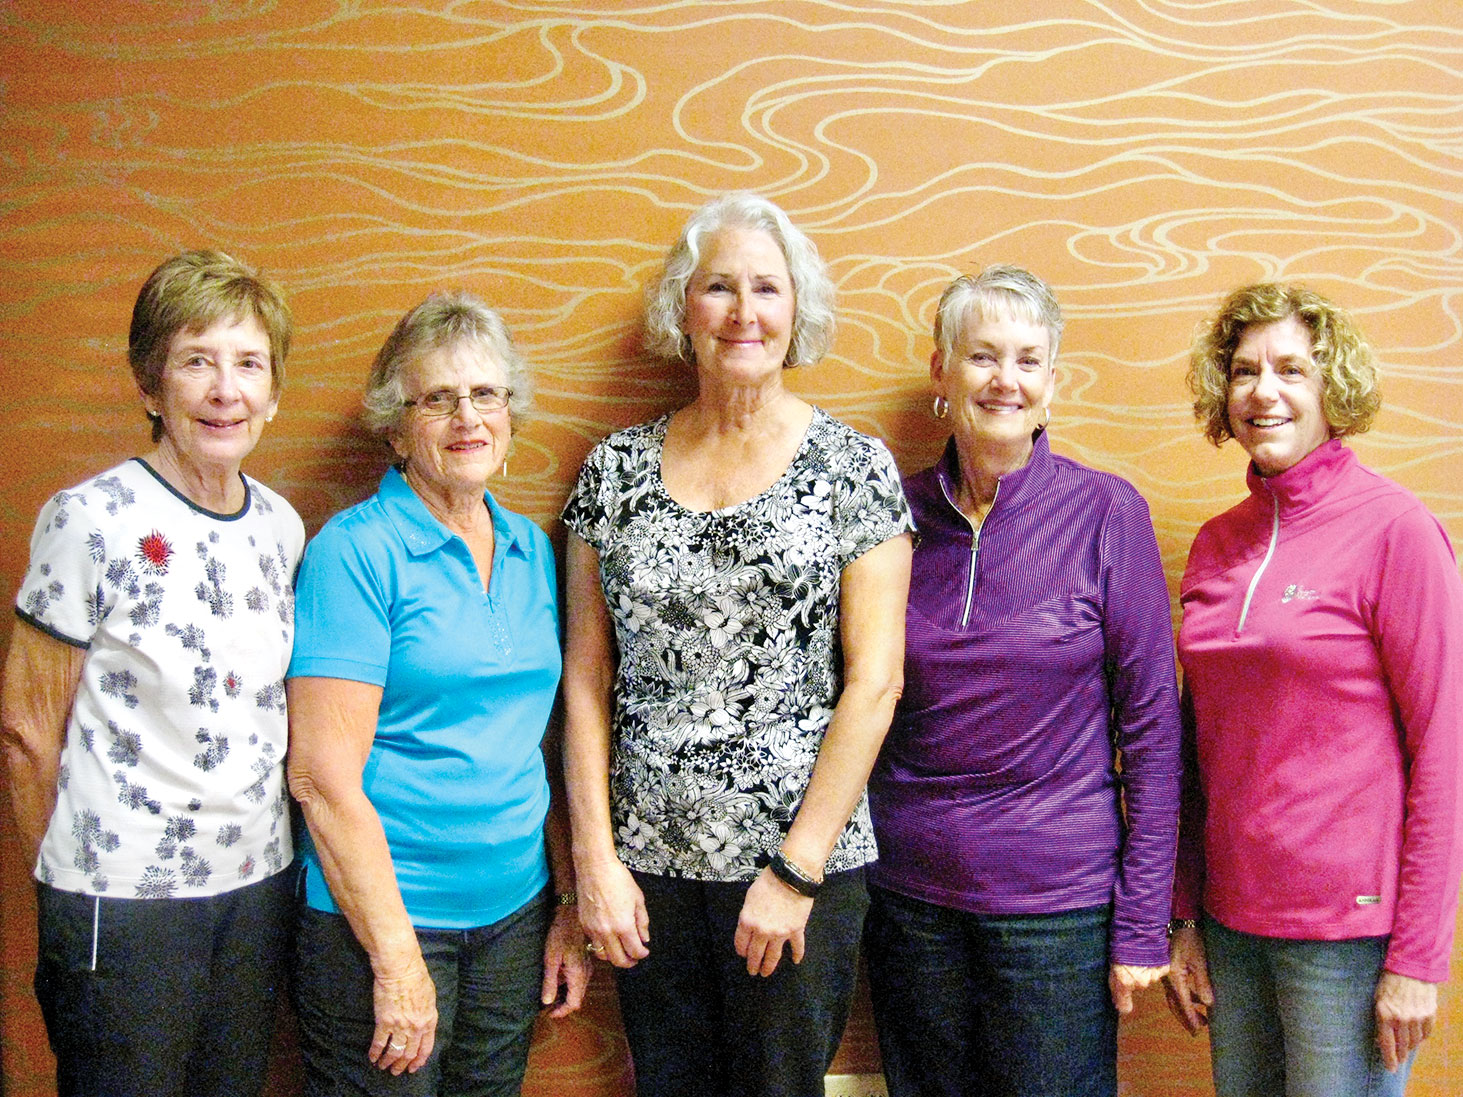 The Quail Creek Ladies Golf Association announces its new board. Left to right: Lynda Detman, Joann Salazar, Chris Gould, Bonny Wilcox and Paula Scafuri